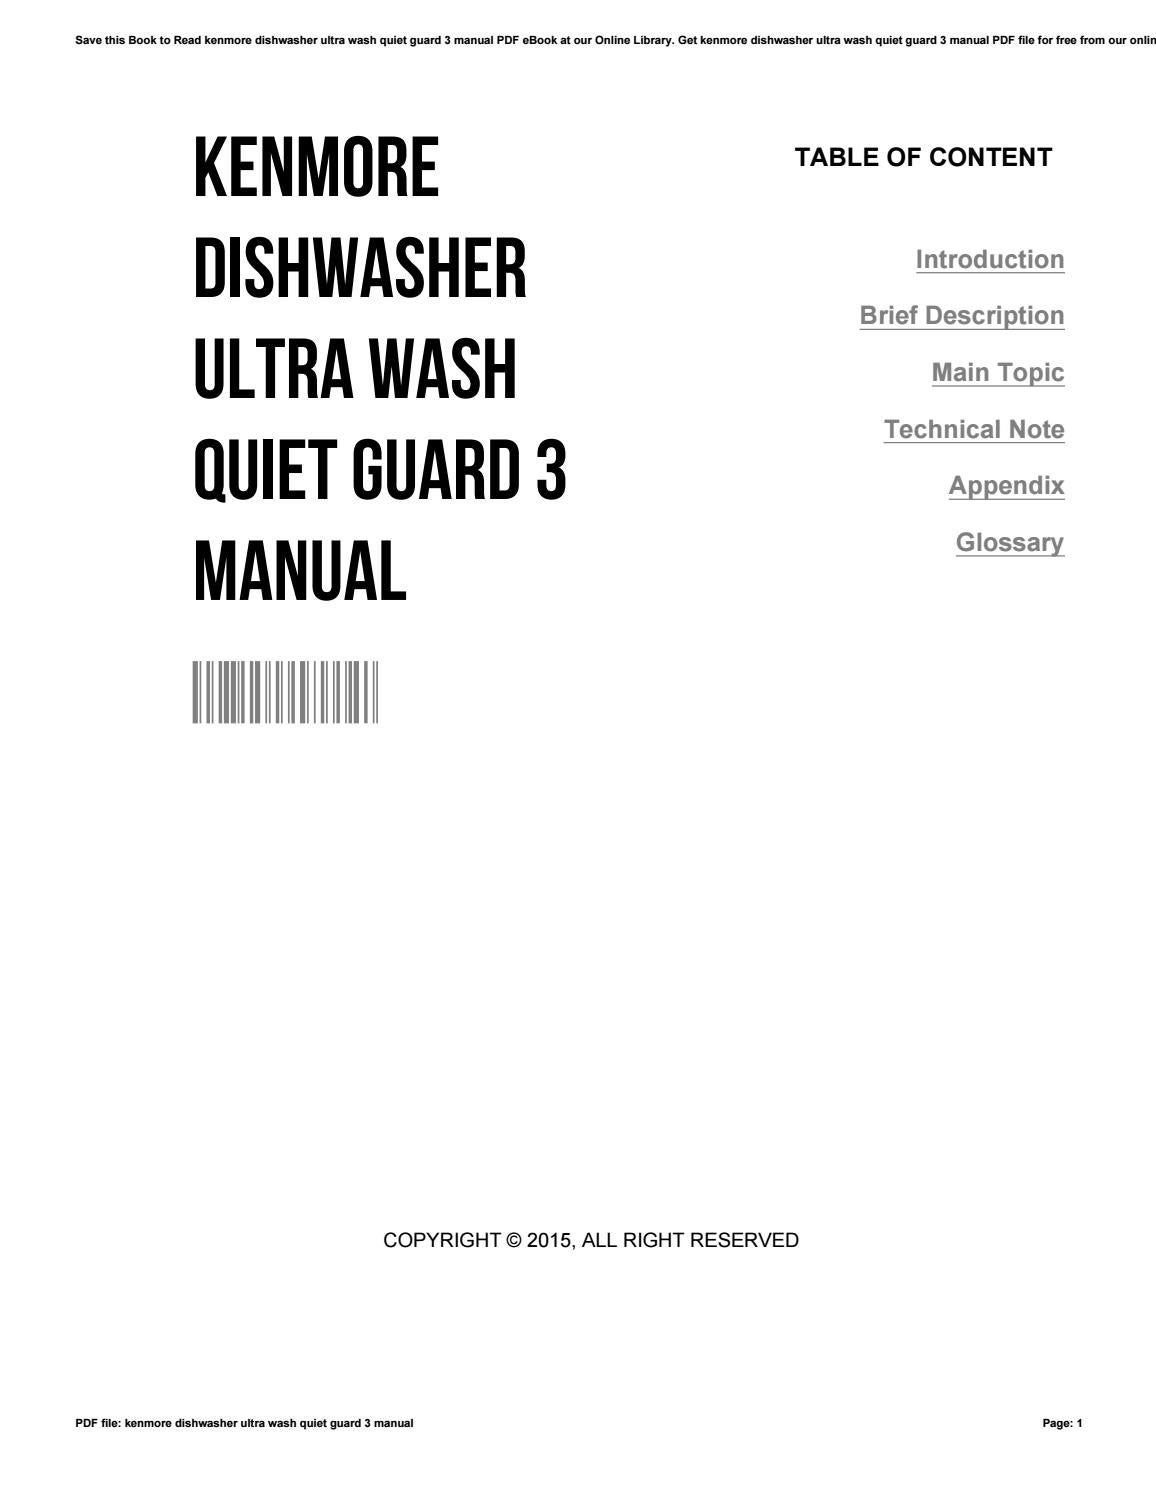 Kenmore dishwasher ultra wash quiet guard 3 manual by